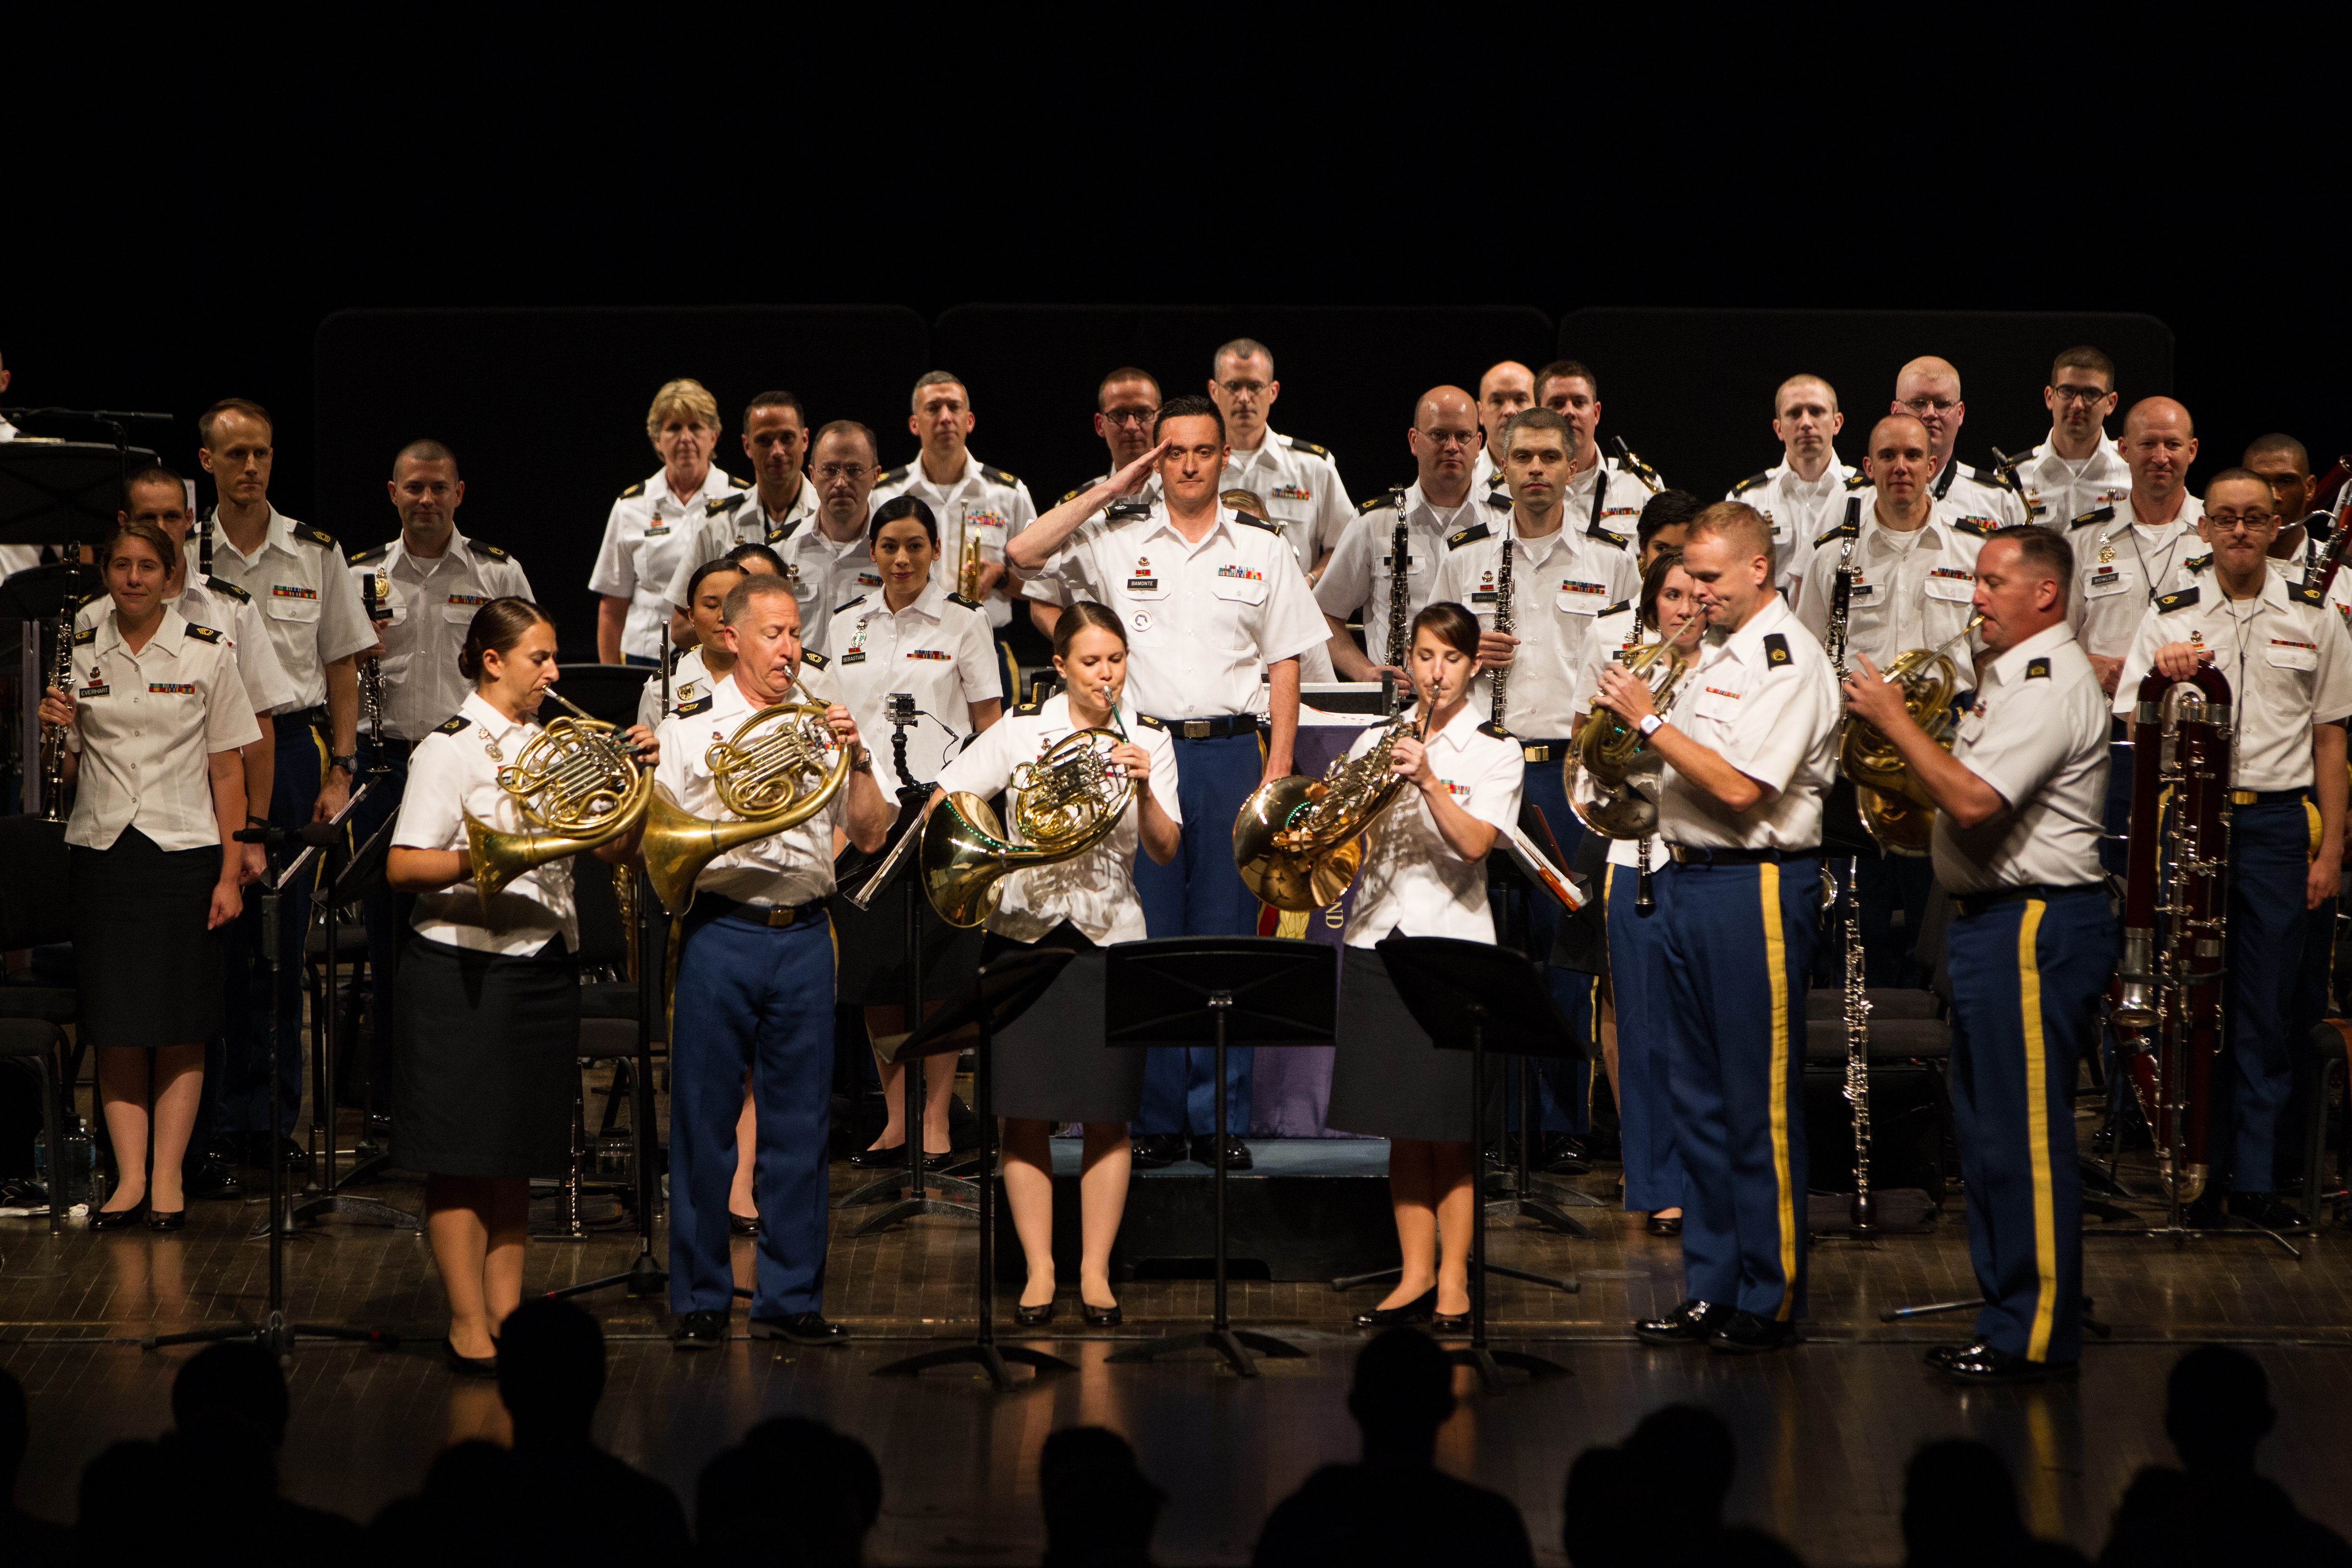 Inspirational mission, artistic excellence draw talented musicians to serve